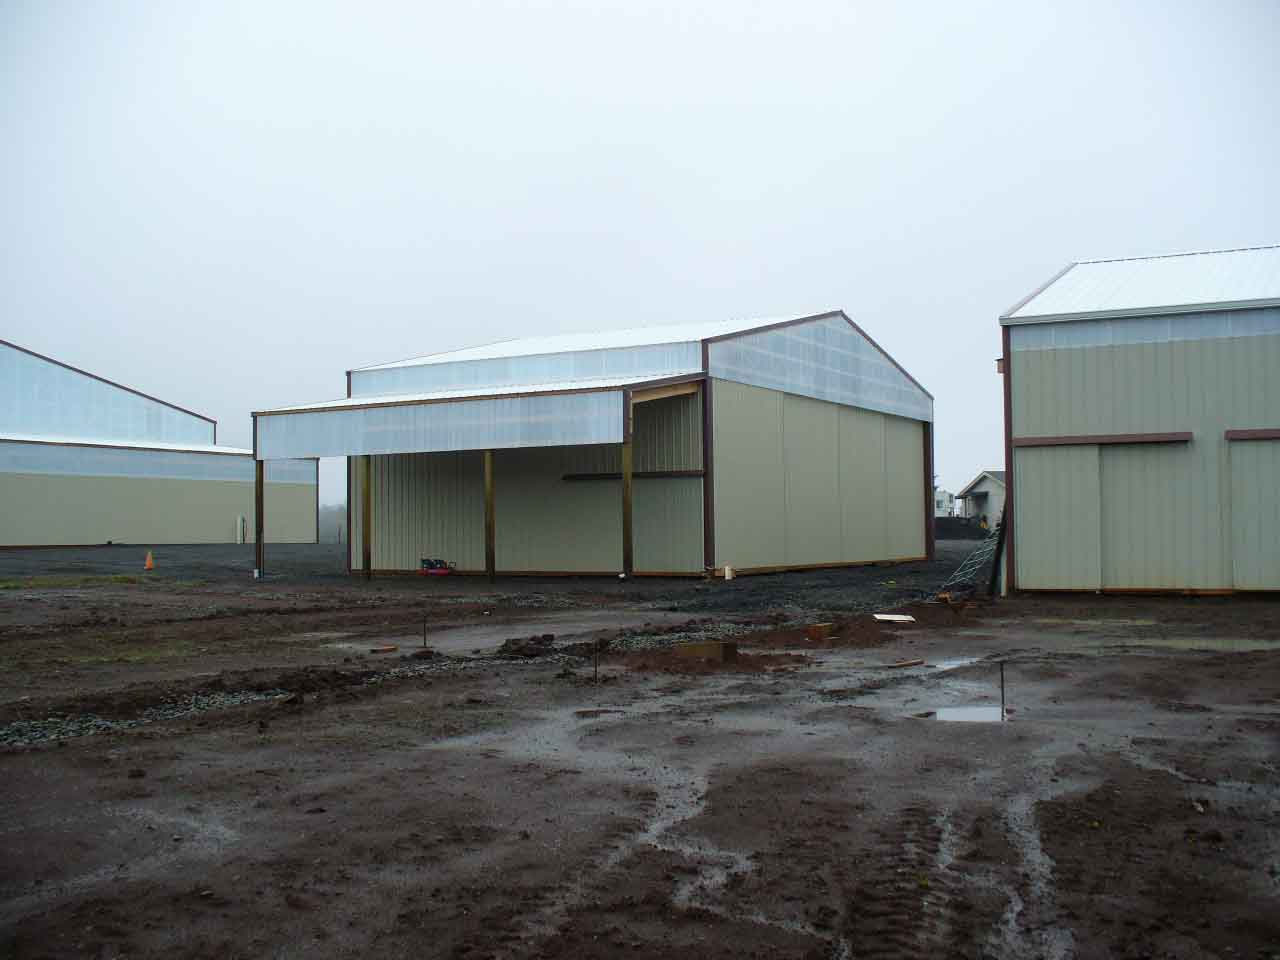 36'x60' hay storage building